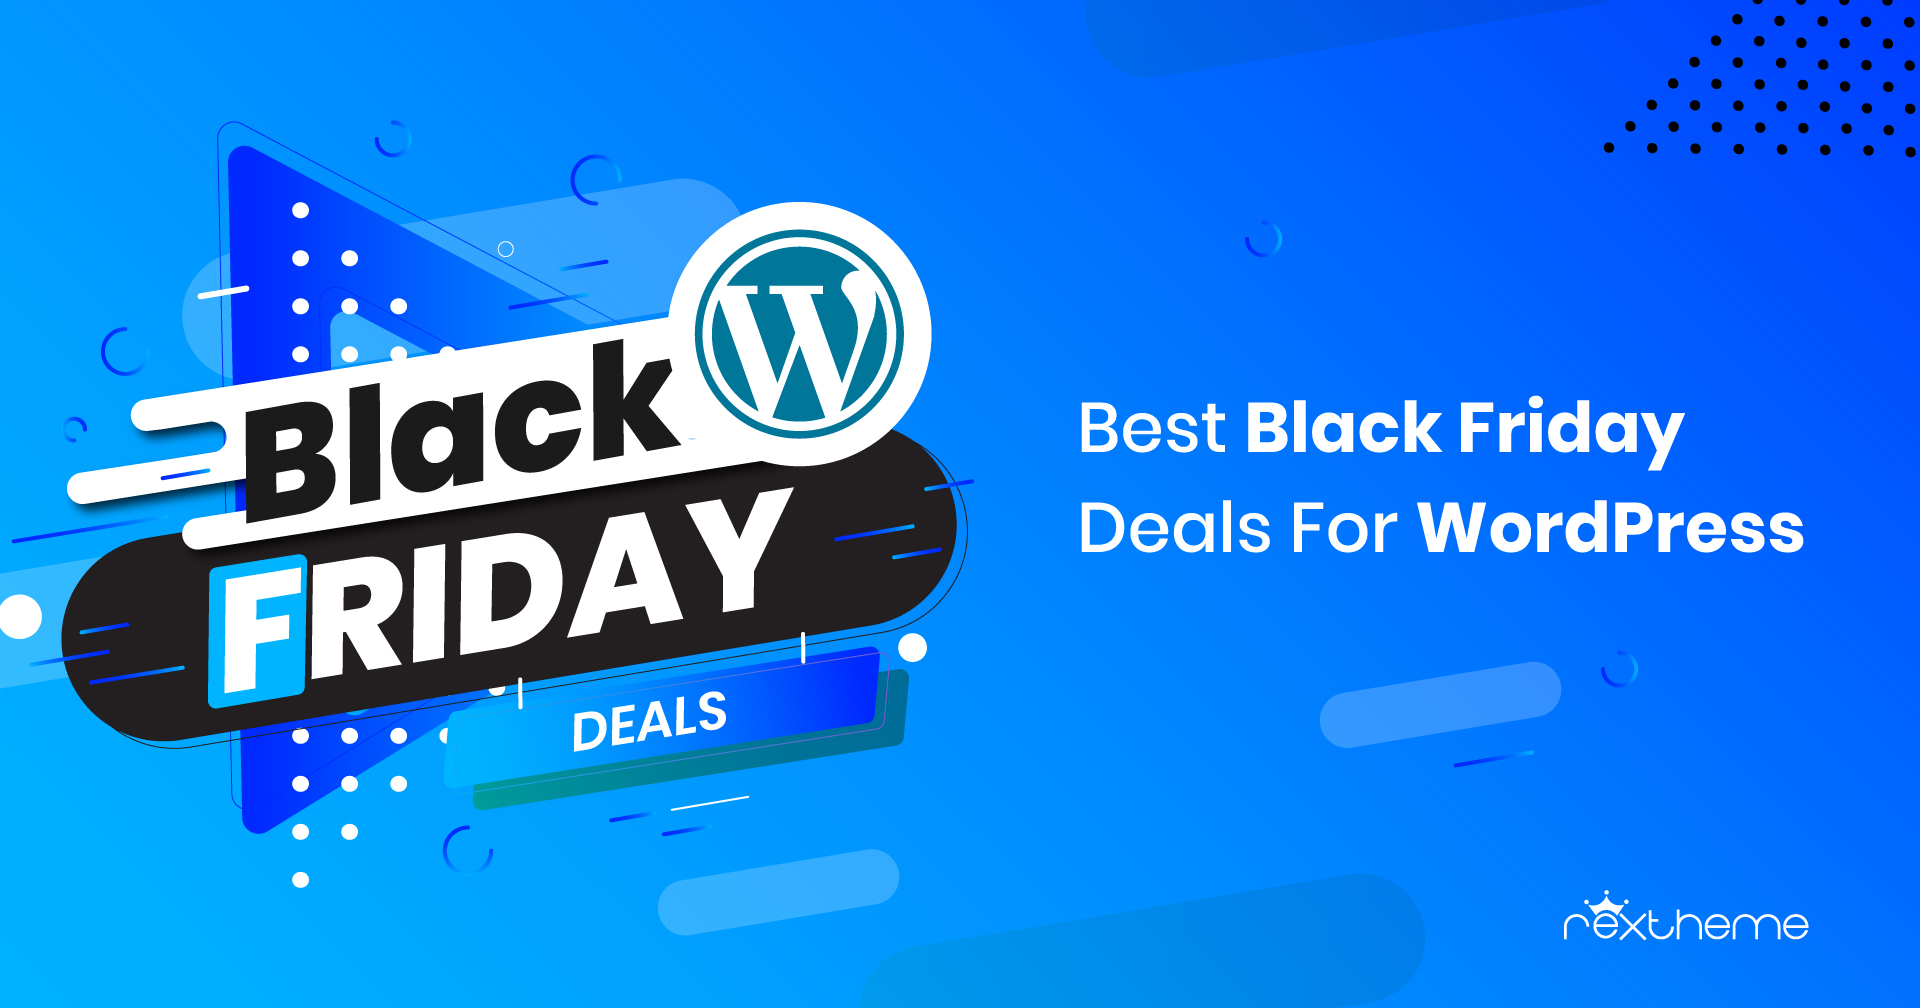 Best Black Friday Deals For WordPress